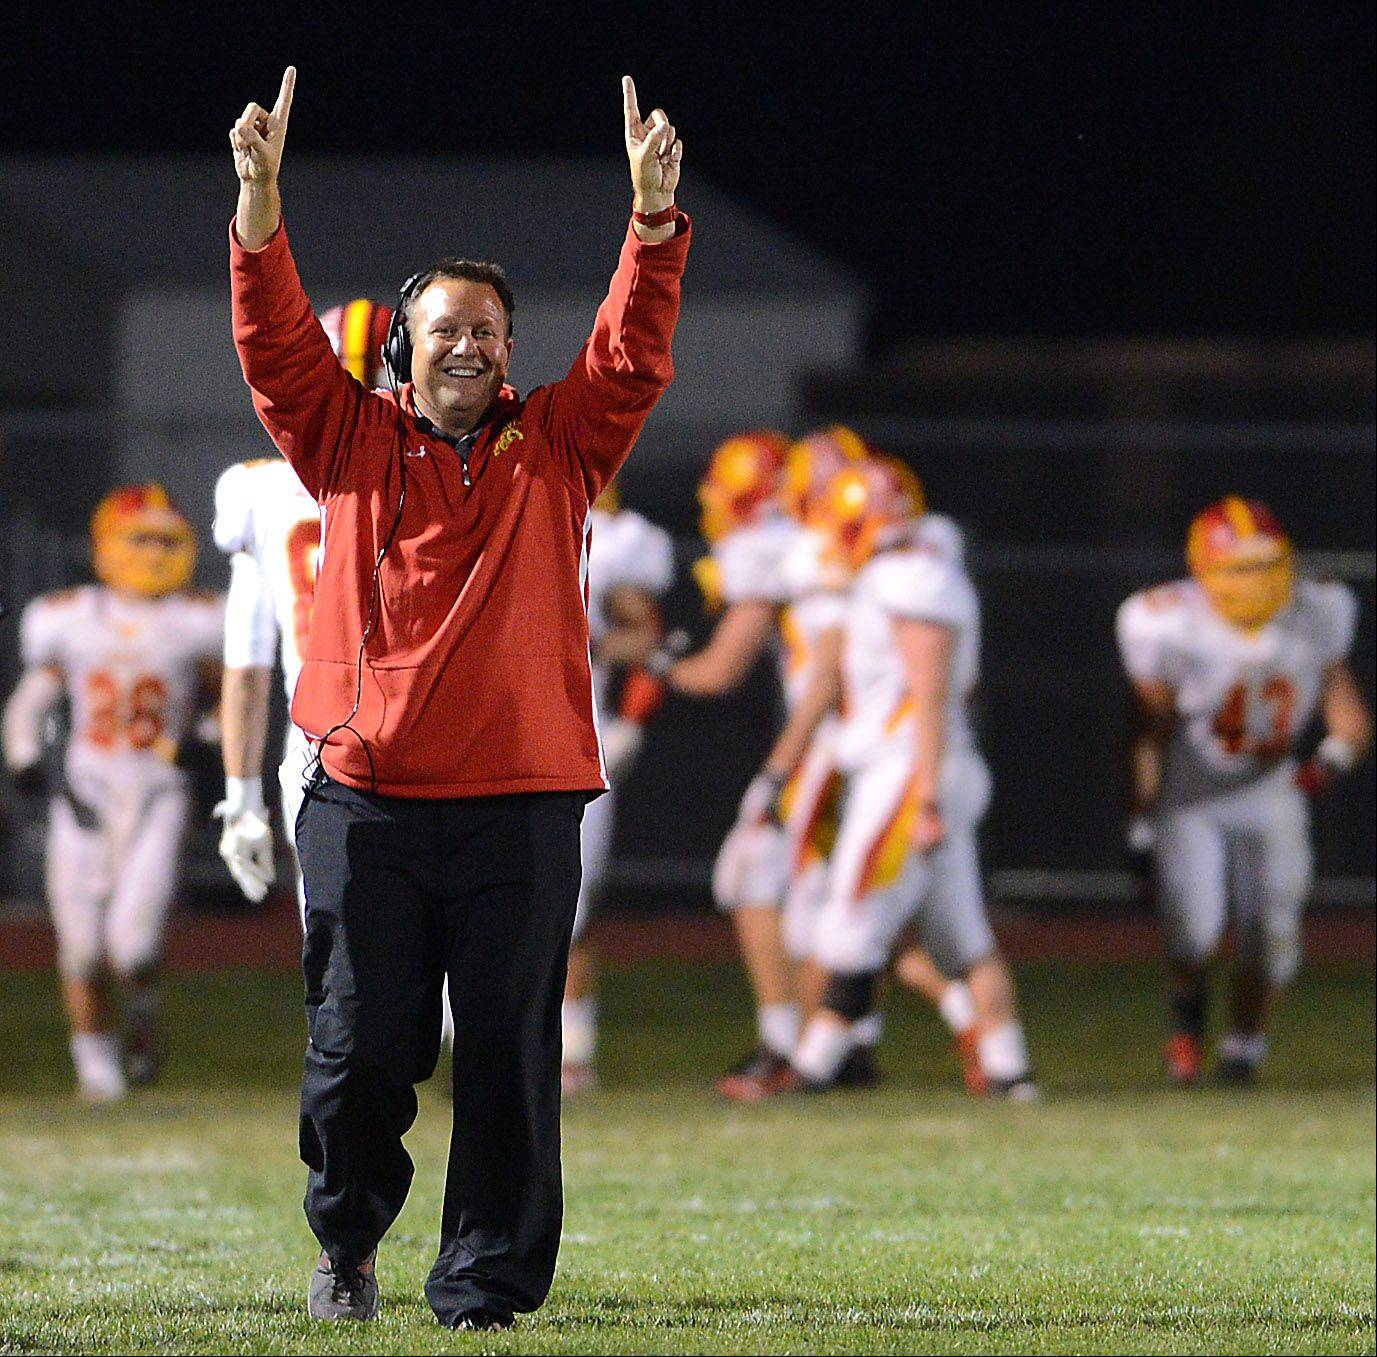 Coach Dennis Piron celebrates after Batavia's Michael Moffatt returns an interception for a touchdown to put the Bulldogs up 25-0 to close the first half.